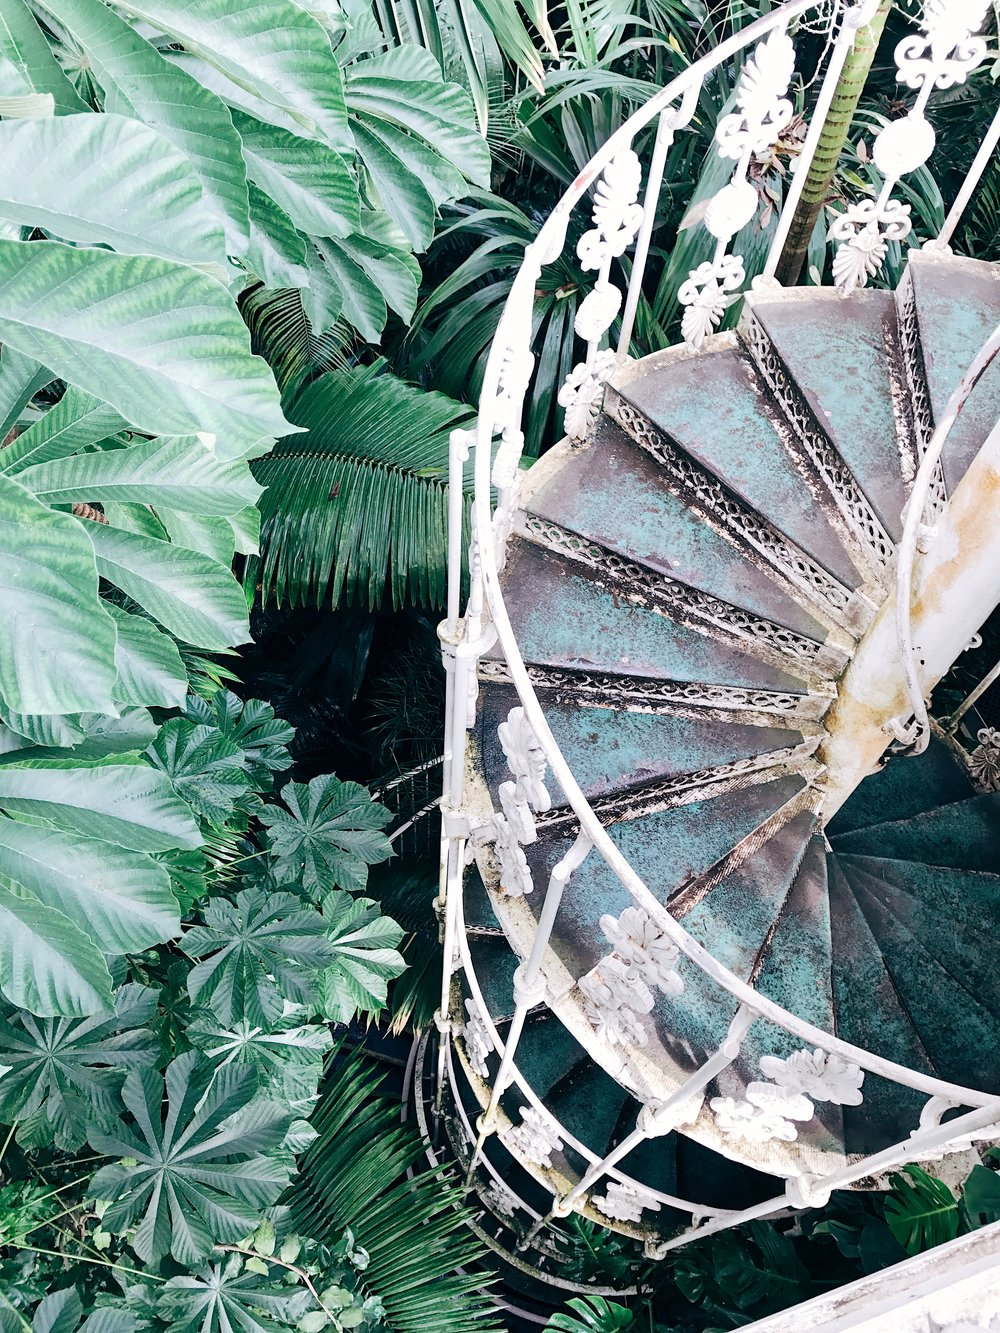 Image: Weekend in London - Kew Gardens